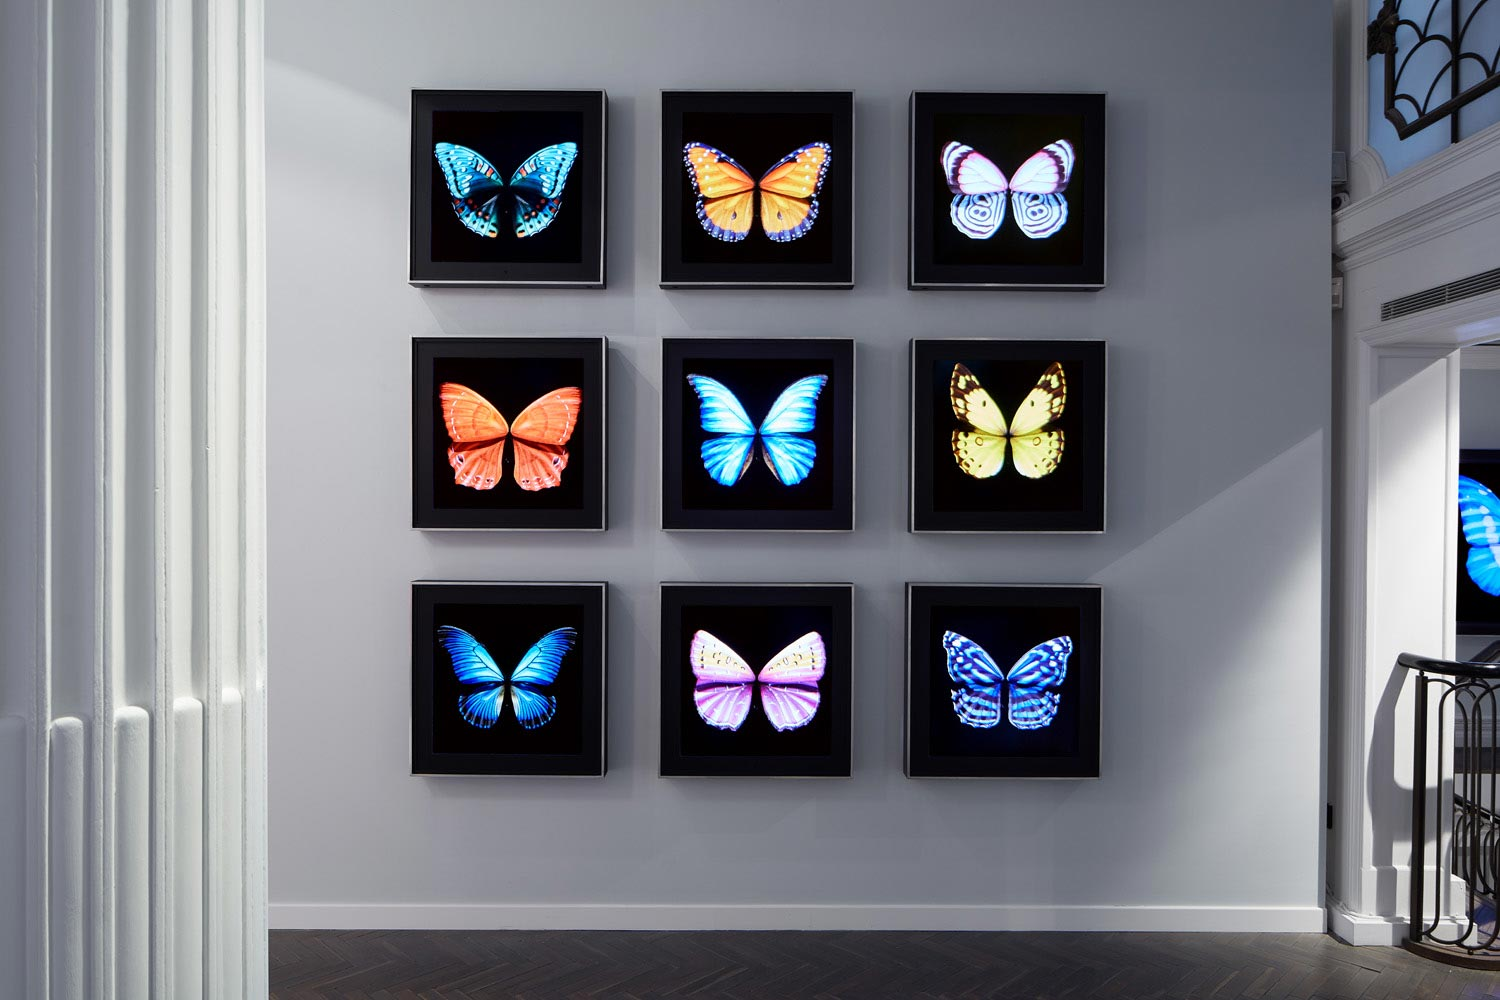 Metamorphosis Solo by Dominic Harris at Halcyon Gallery